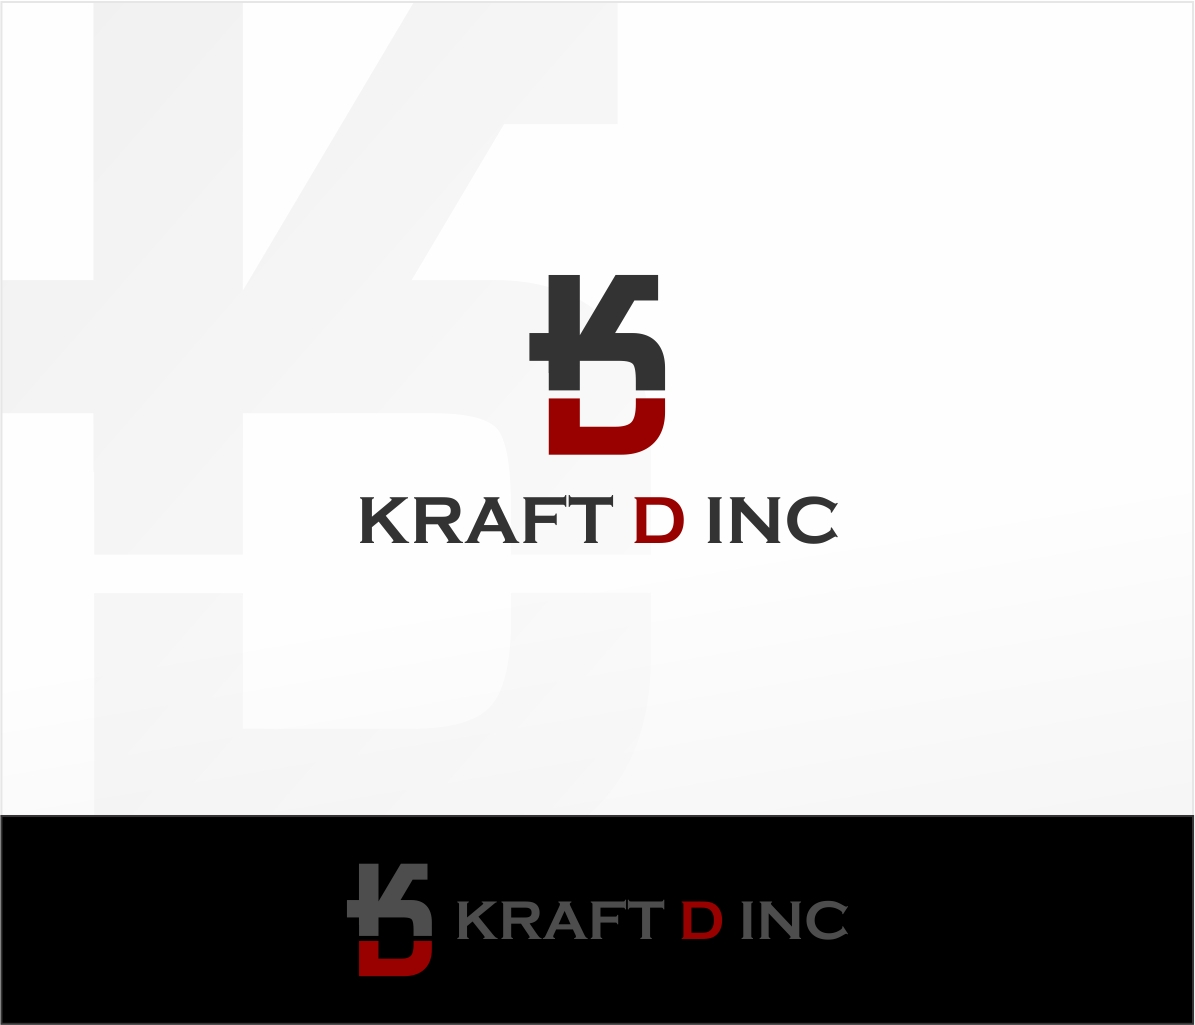 Logo Design by haidu - Entry No. 28 in the Logo Design Contest Unique Logo Design Wanted for Kraft D Inc.